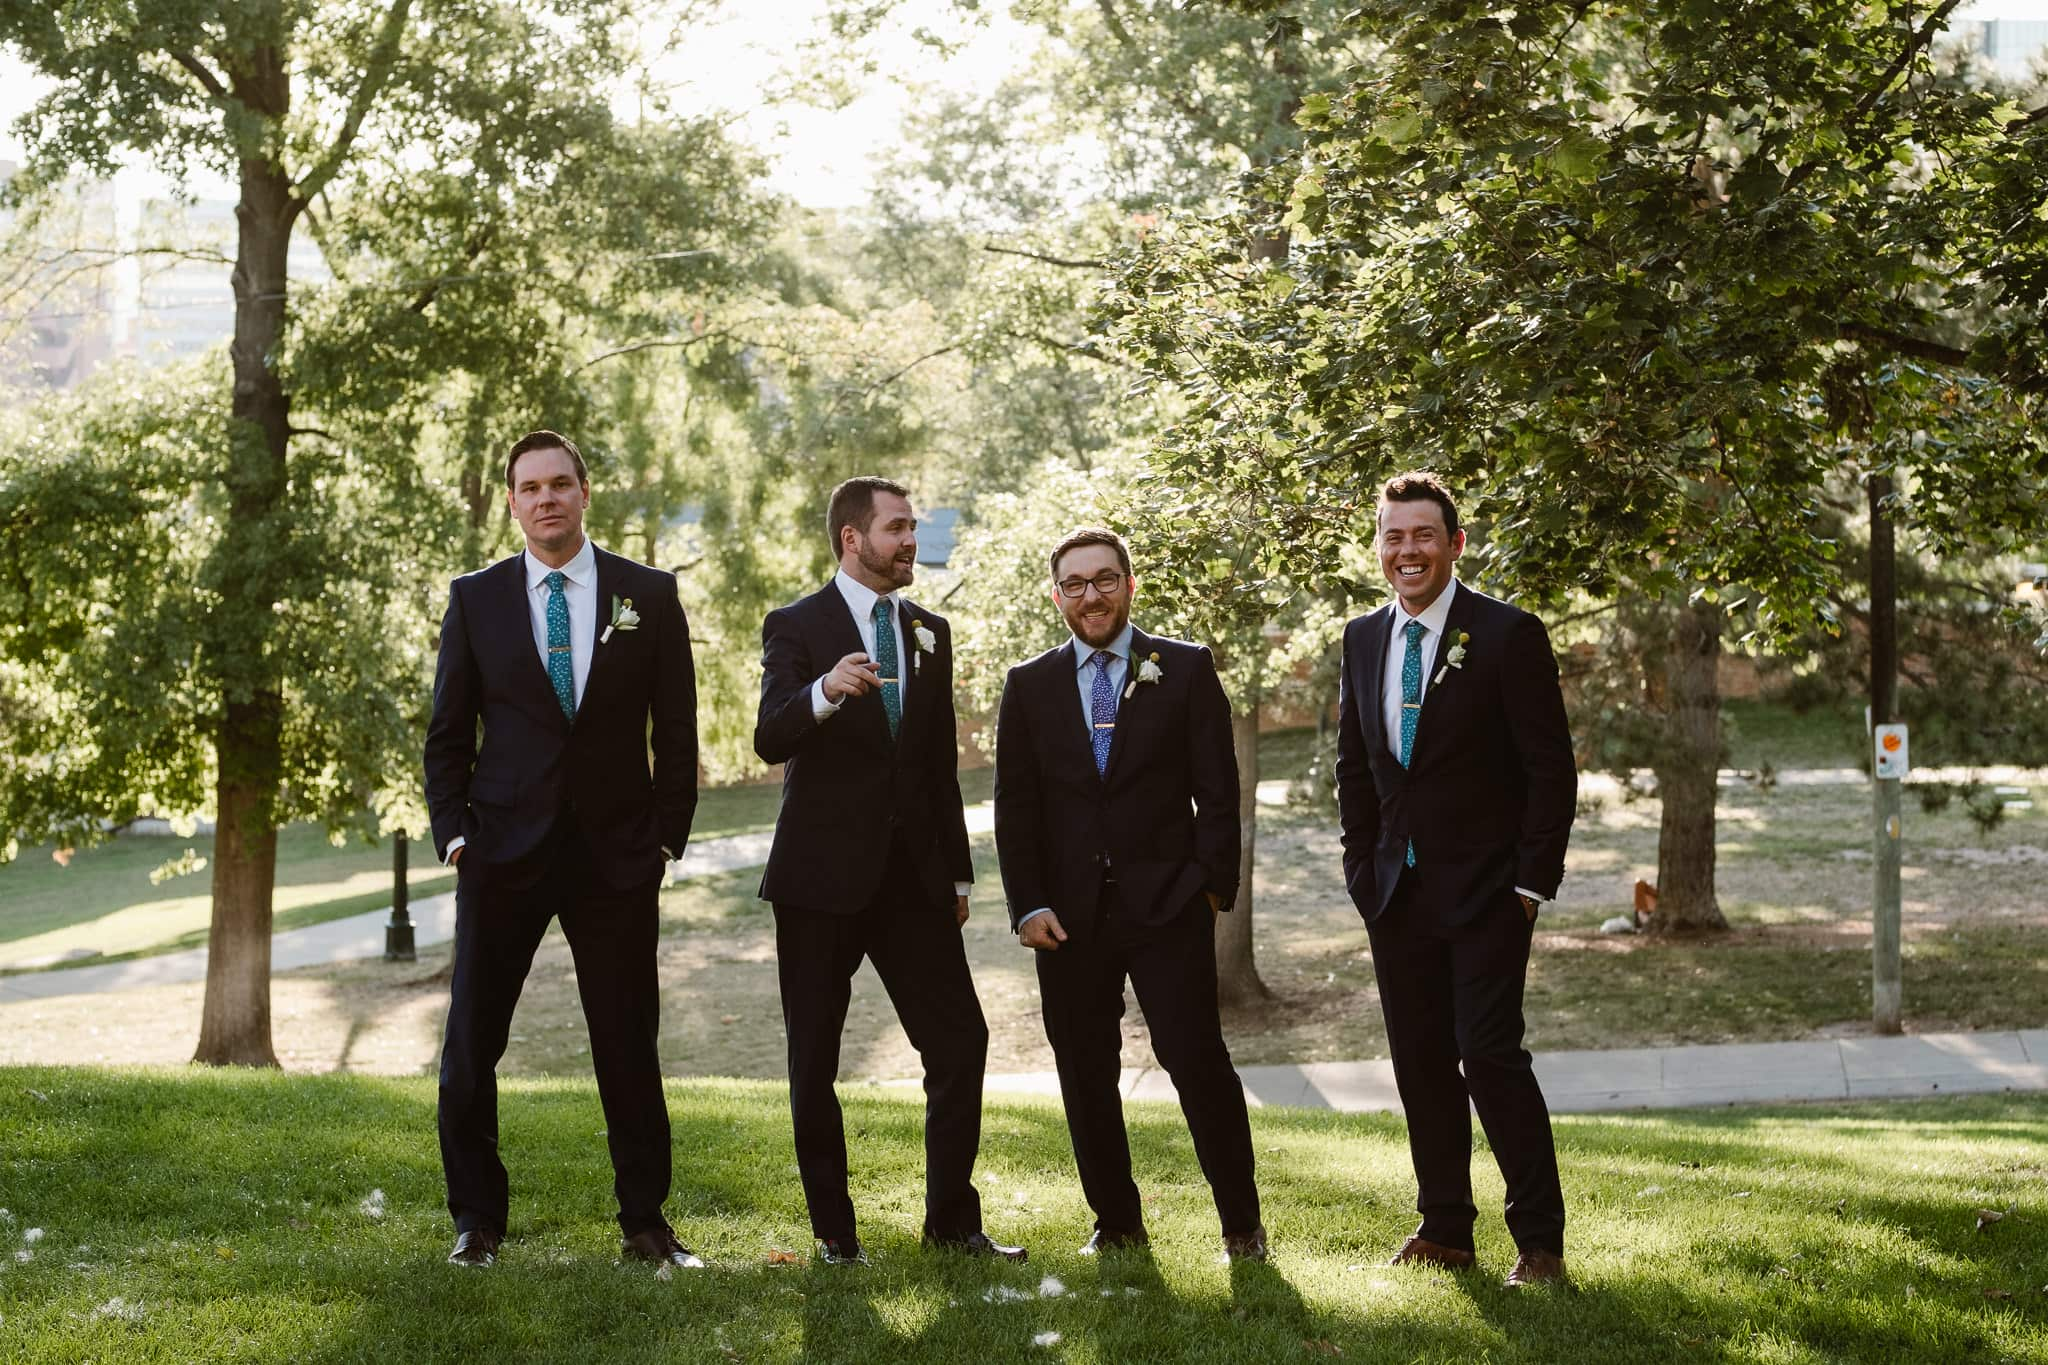 Grant Humphreys Mansion Wedding Photographer, Denver wedding photographer, Colorado wedding photographer, groom with groomsmen